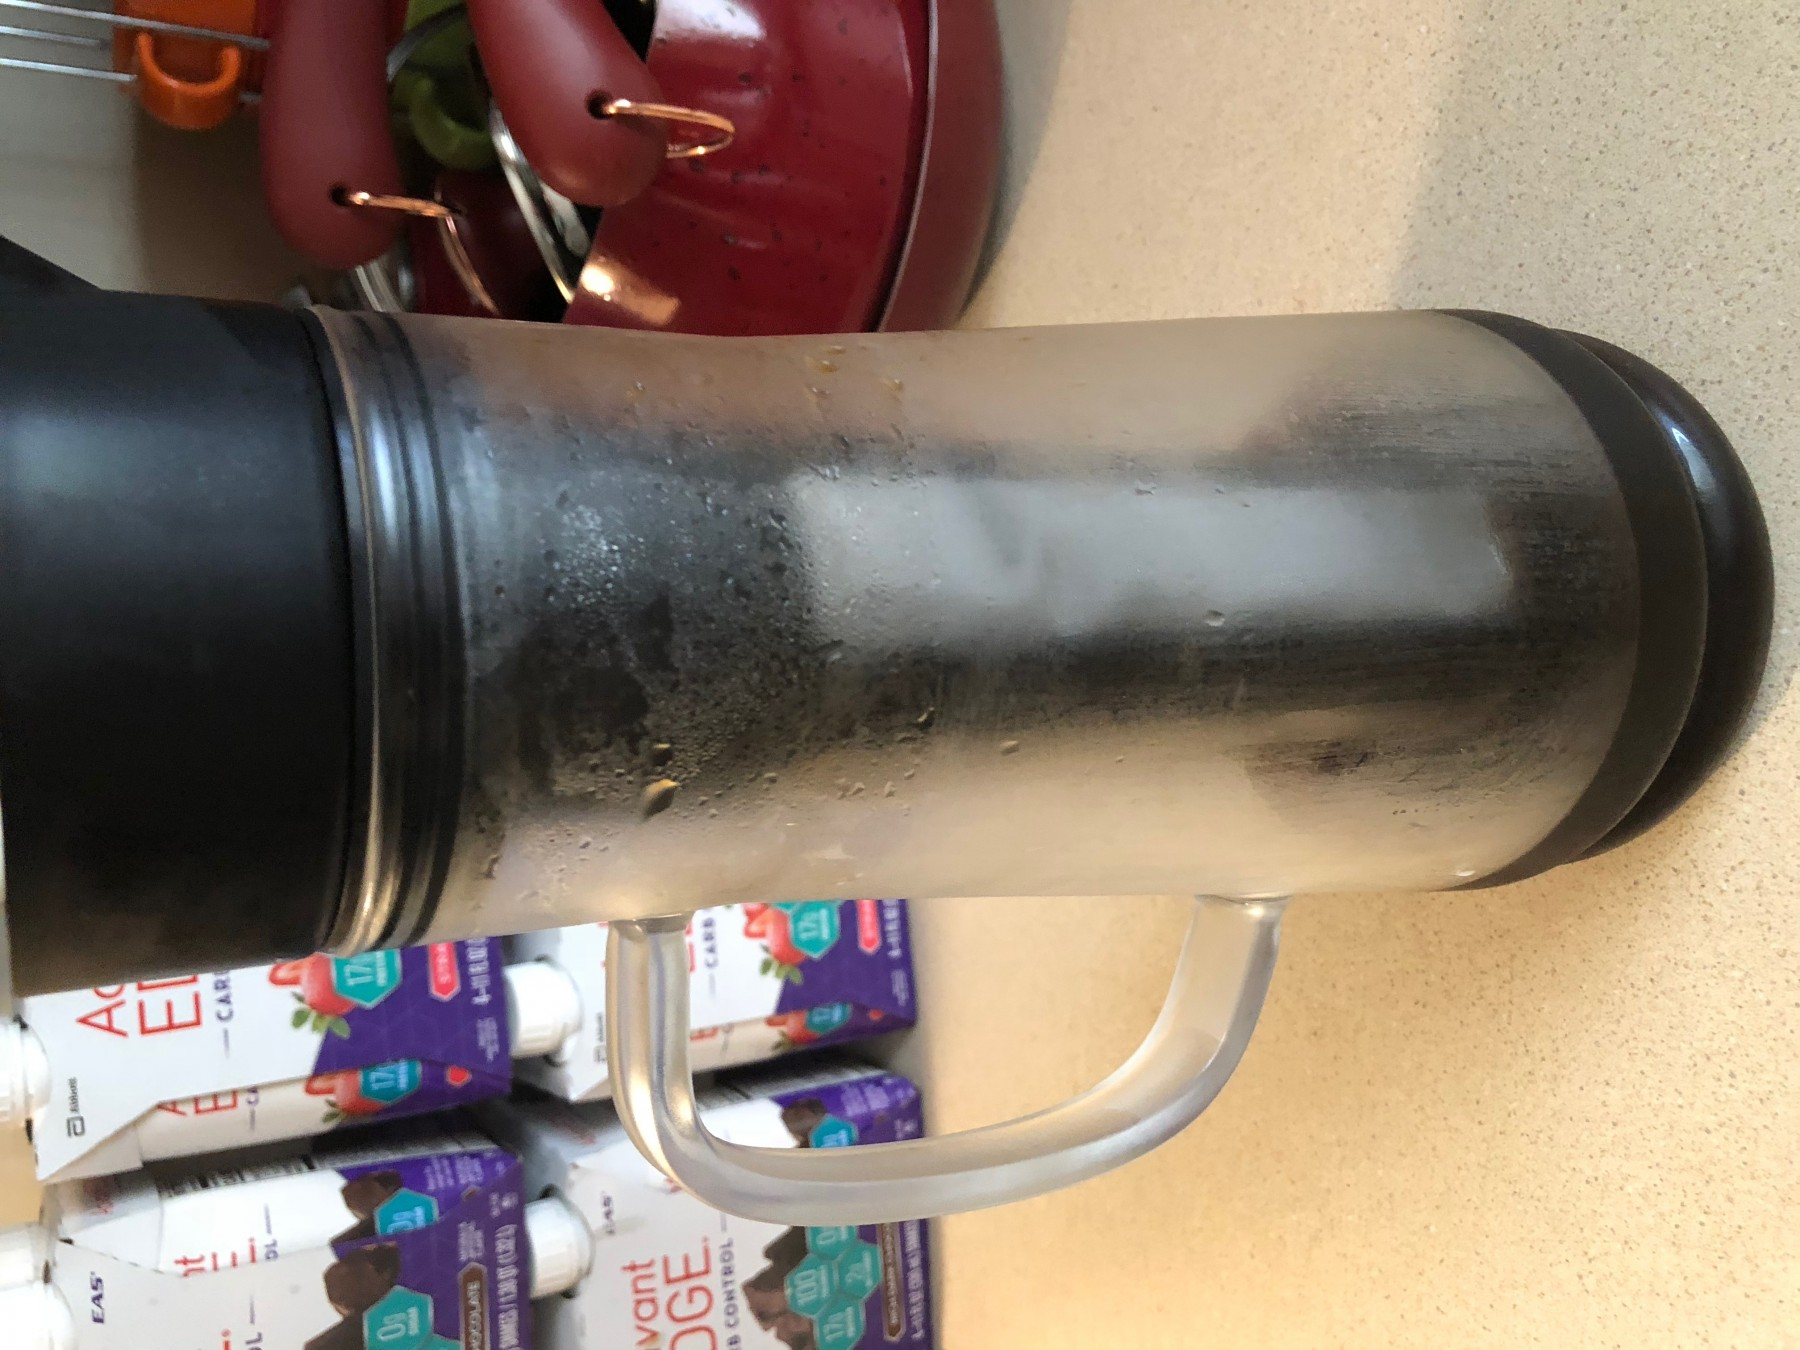 Cold brewed coffee at home!